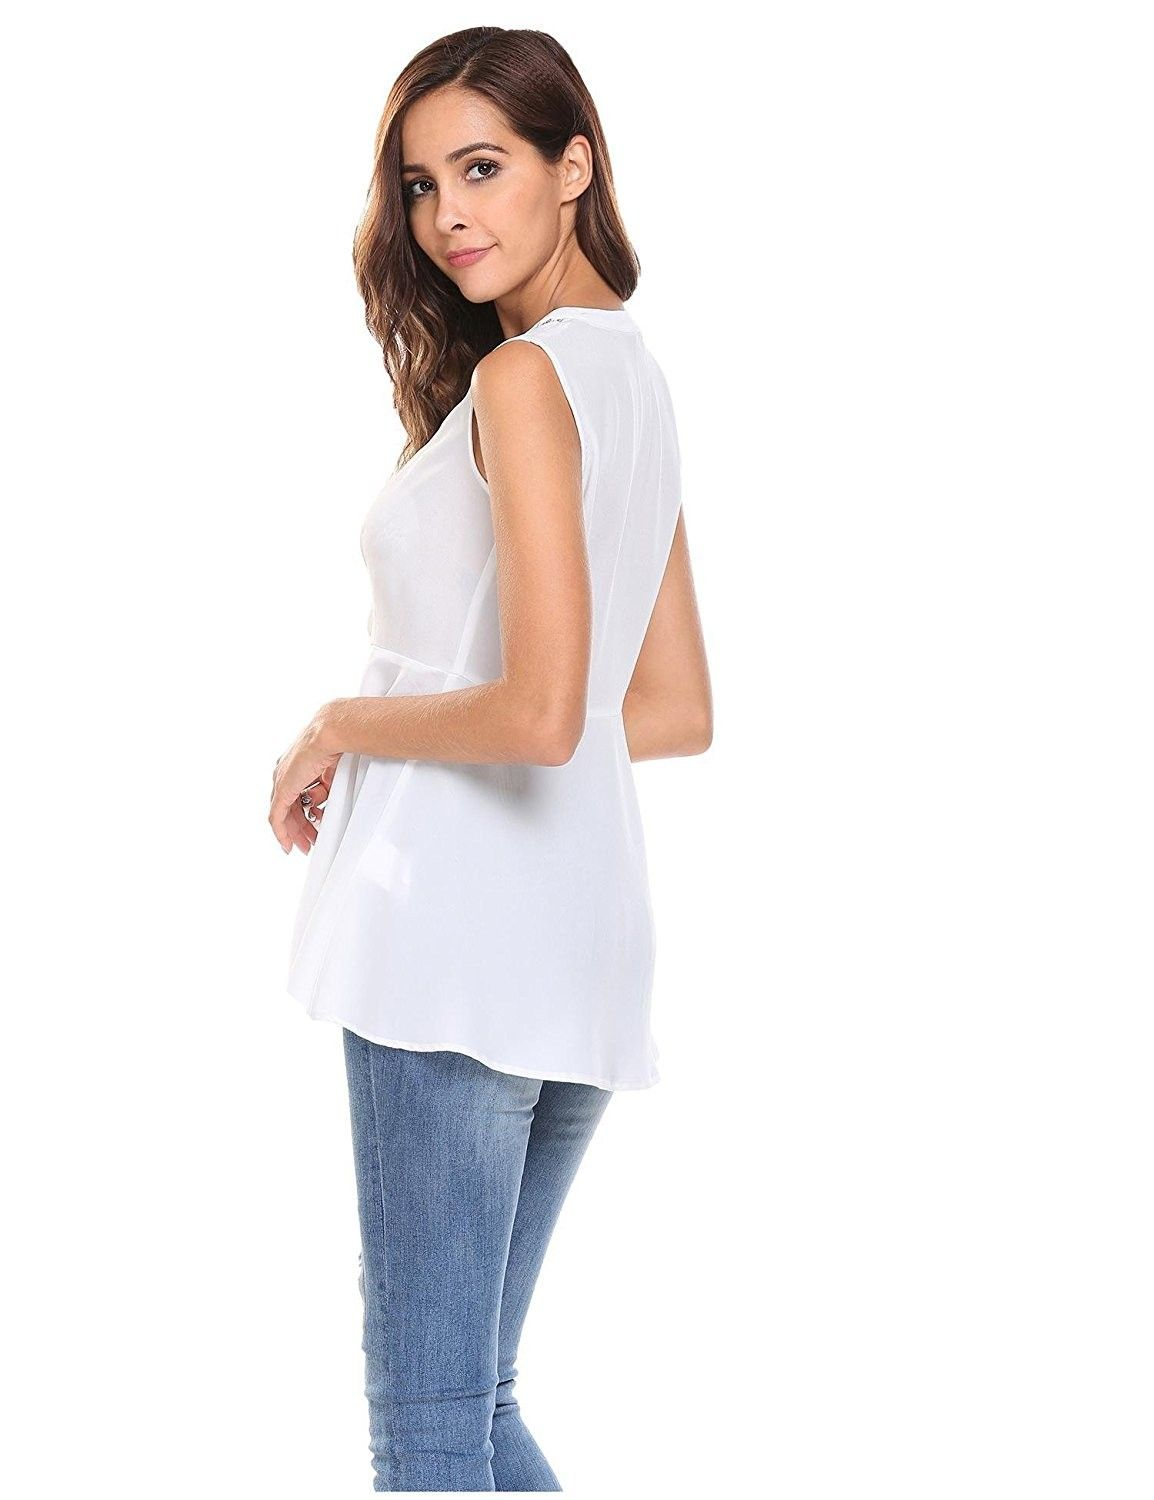 5587fe3e3b Women's Clothing, Tops & Tees, Blouses & Button-Down Shirts, Women  Sleeveless V Neck Tank Top Slim Fit Lace Chiffon Peplum Blouse Shirt - White  ...